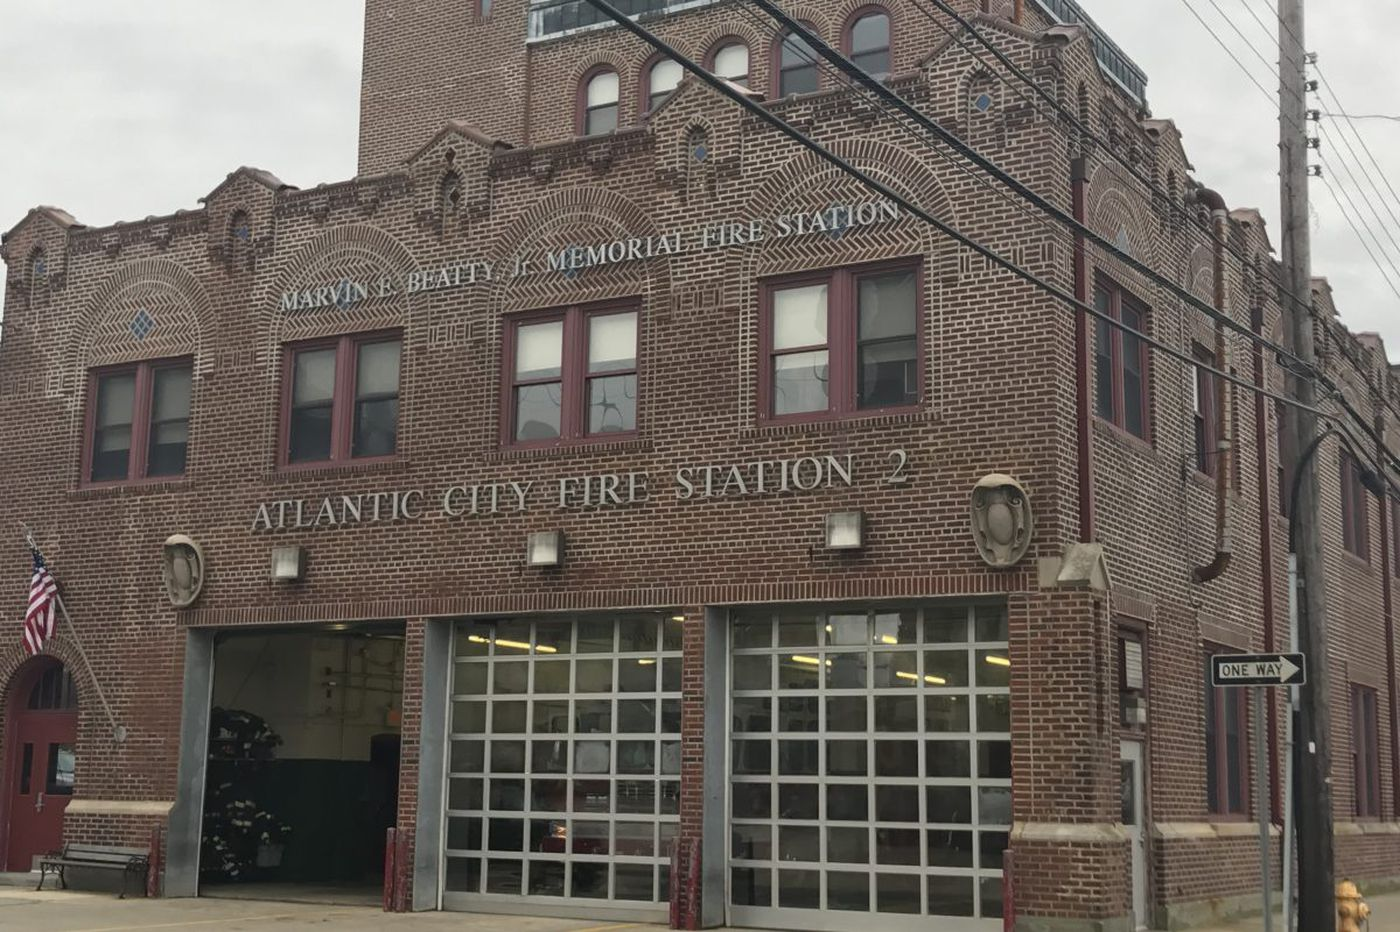 Atlantic City firefighters say state hired private eye to track them at their homes